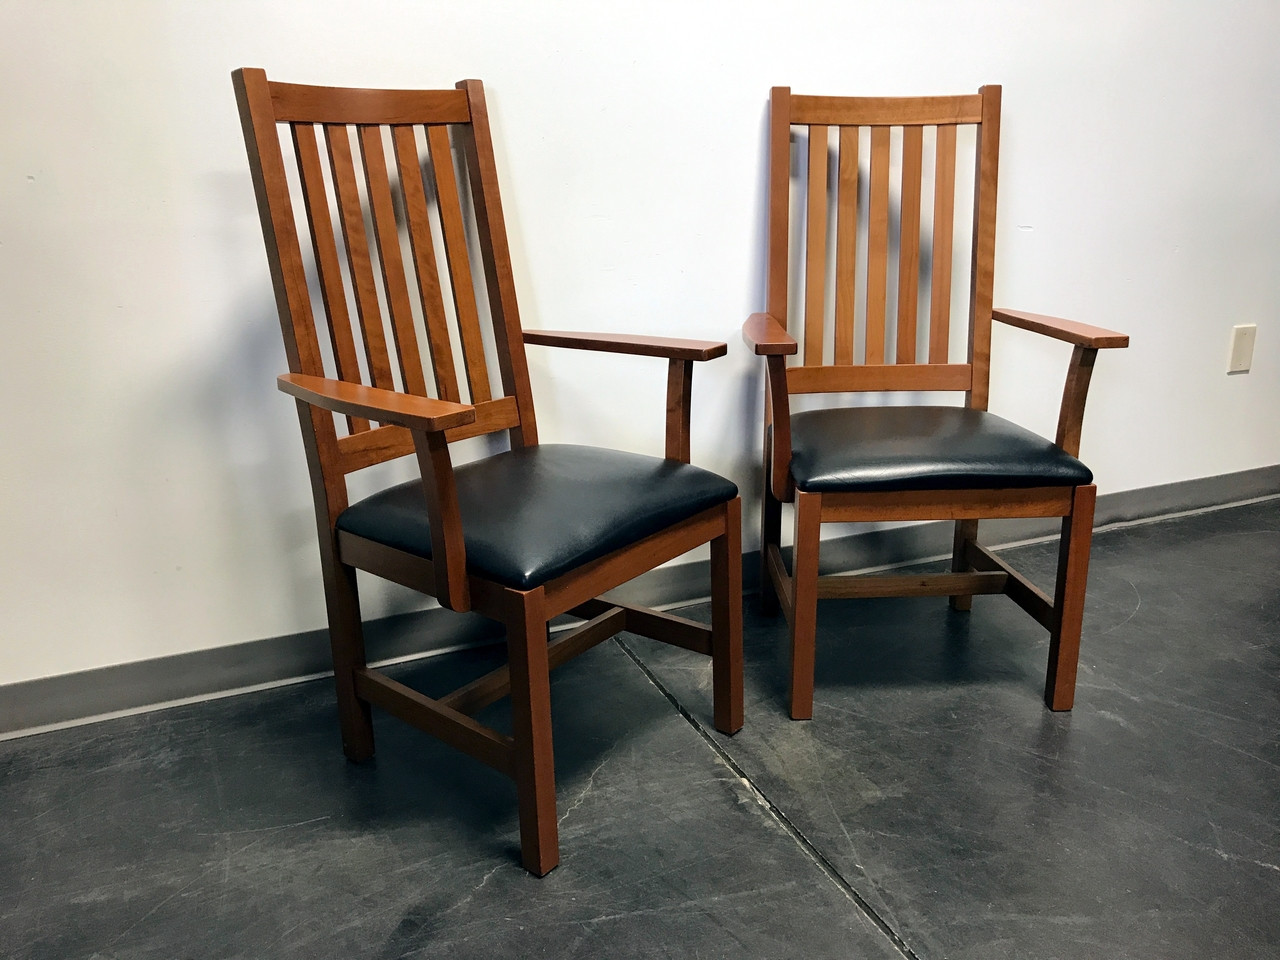 Ordinaire SOLD OUT   Mission Arts U0026 Crafts Craftsman Cherry Arm Chairs With Leather  Seats   Set